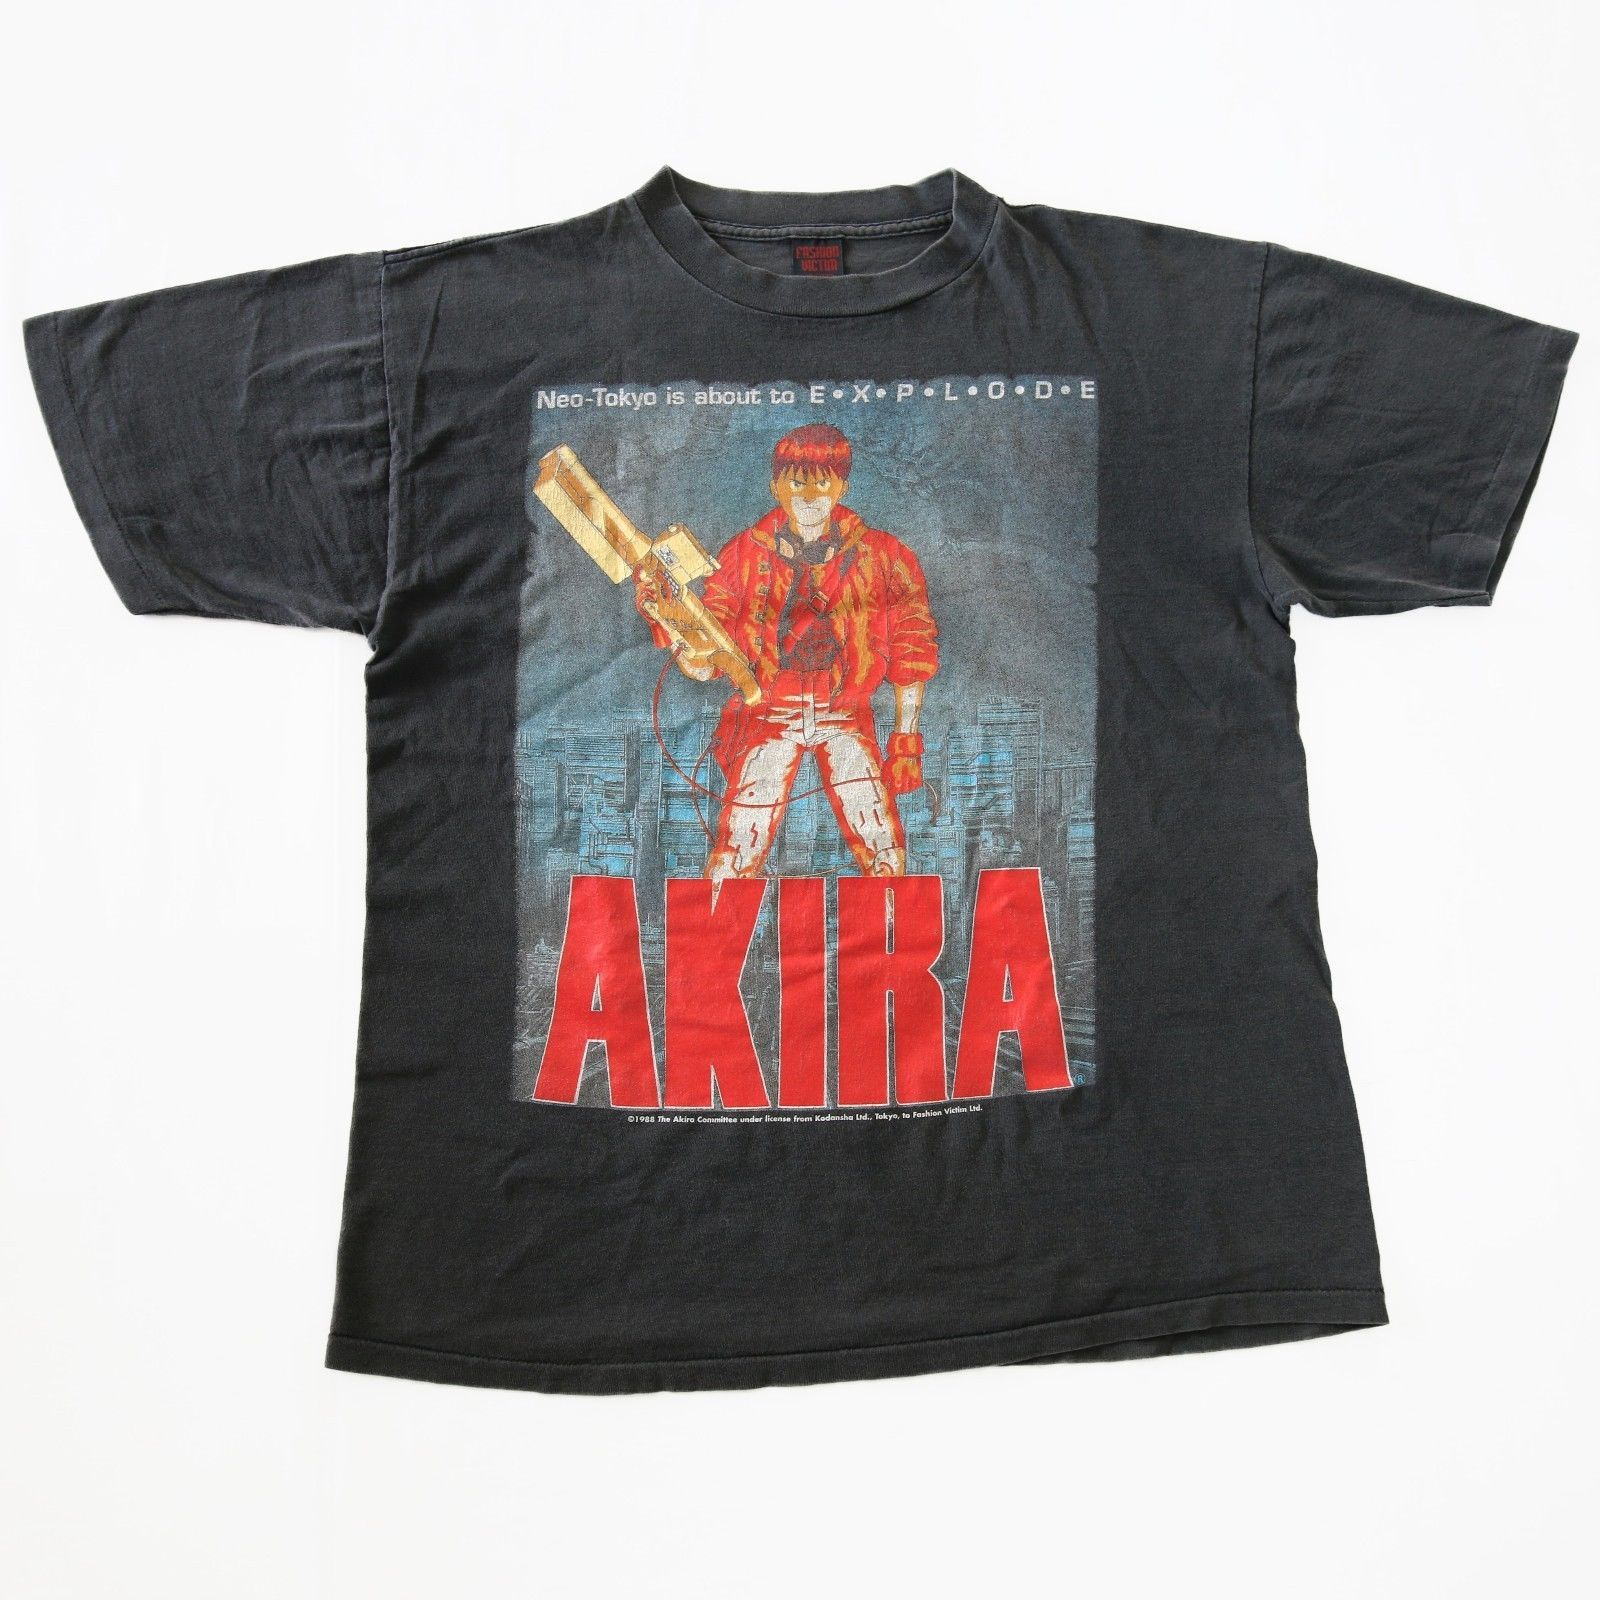 a92640dc92 Vintage 90s AKIRA 1988 Akira Committee Fashion Victim T-Shirt for sale!  http: